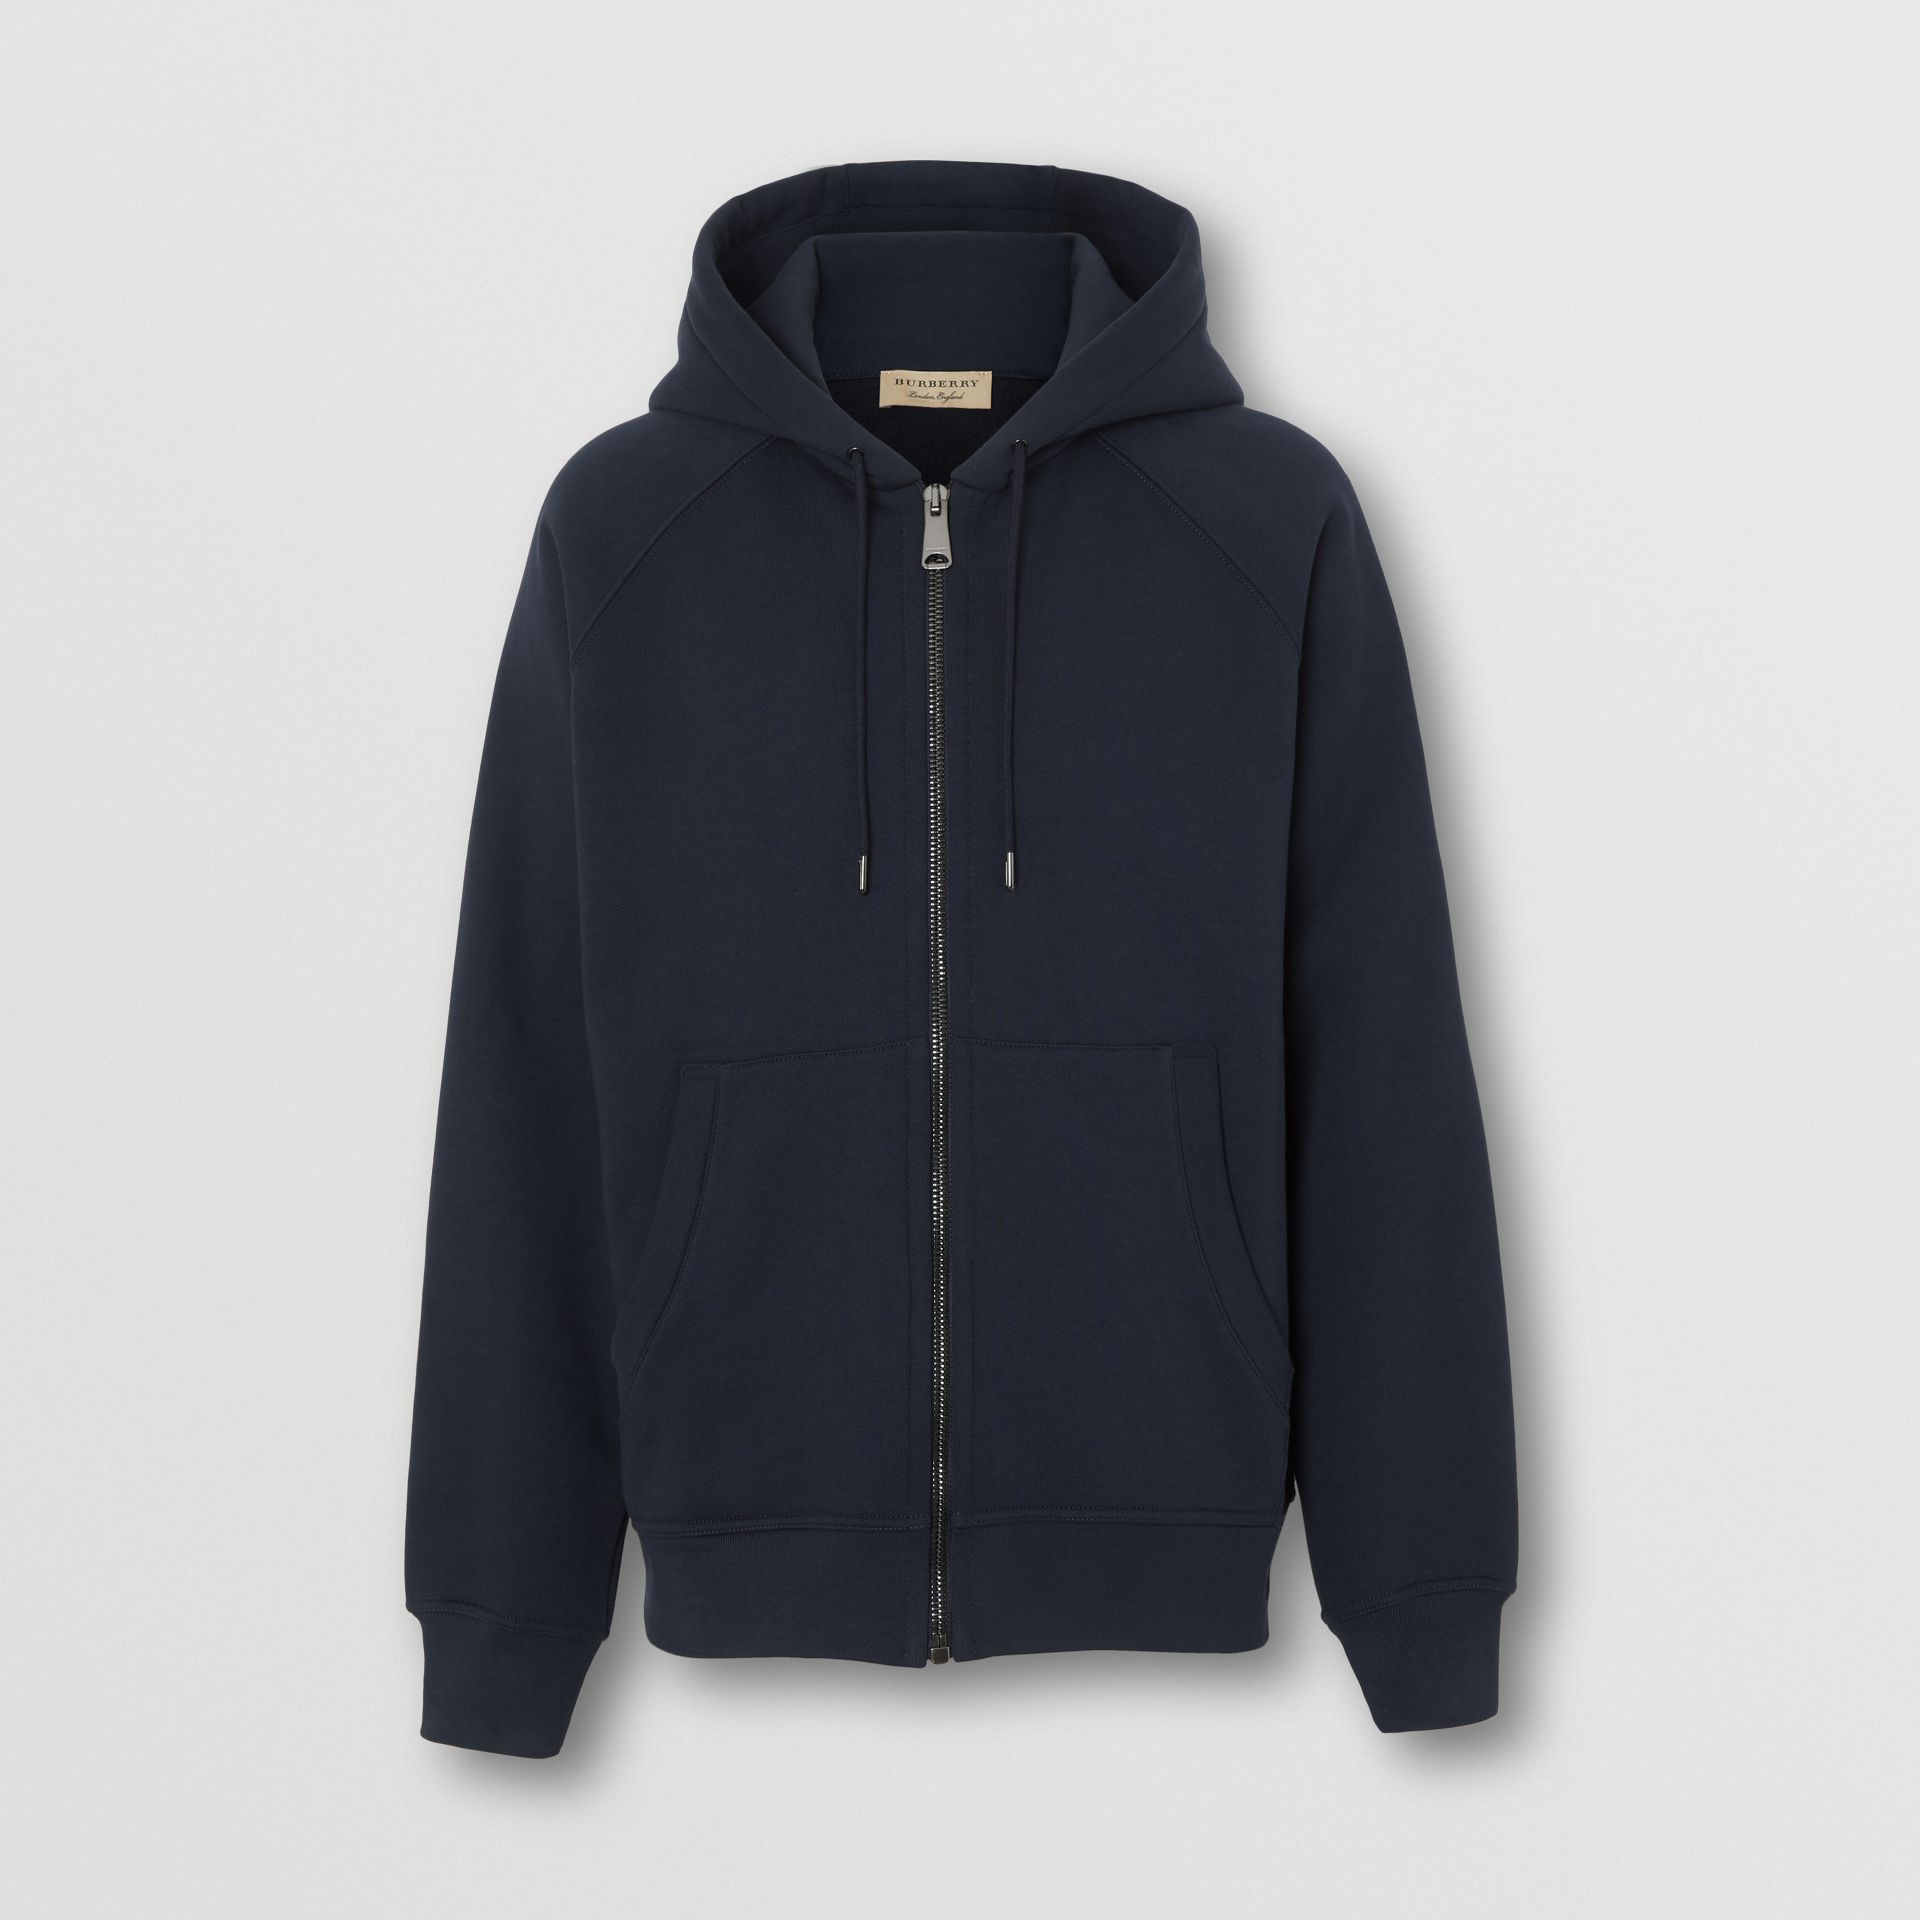 Embroidered Logo Jersey Hooded Top in Navy - Men | Burberry - gallery image 3